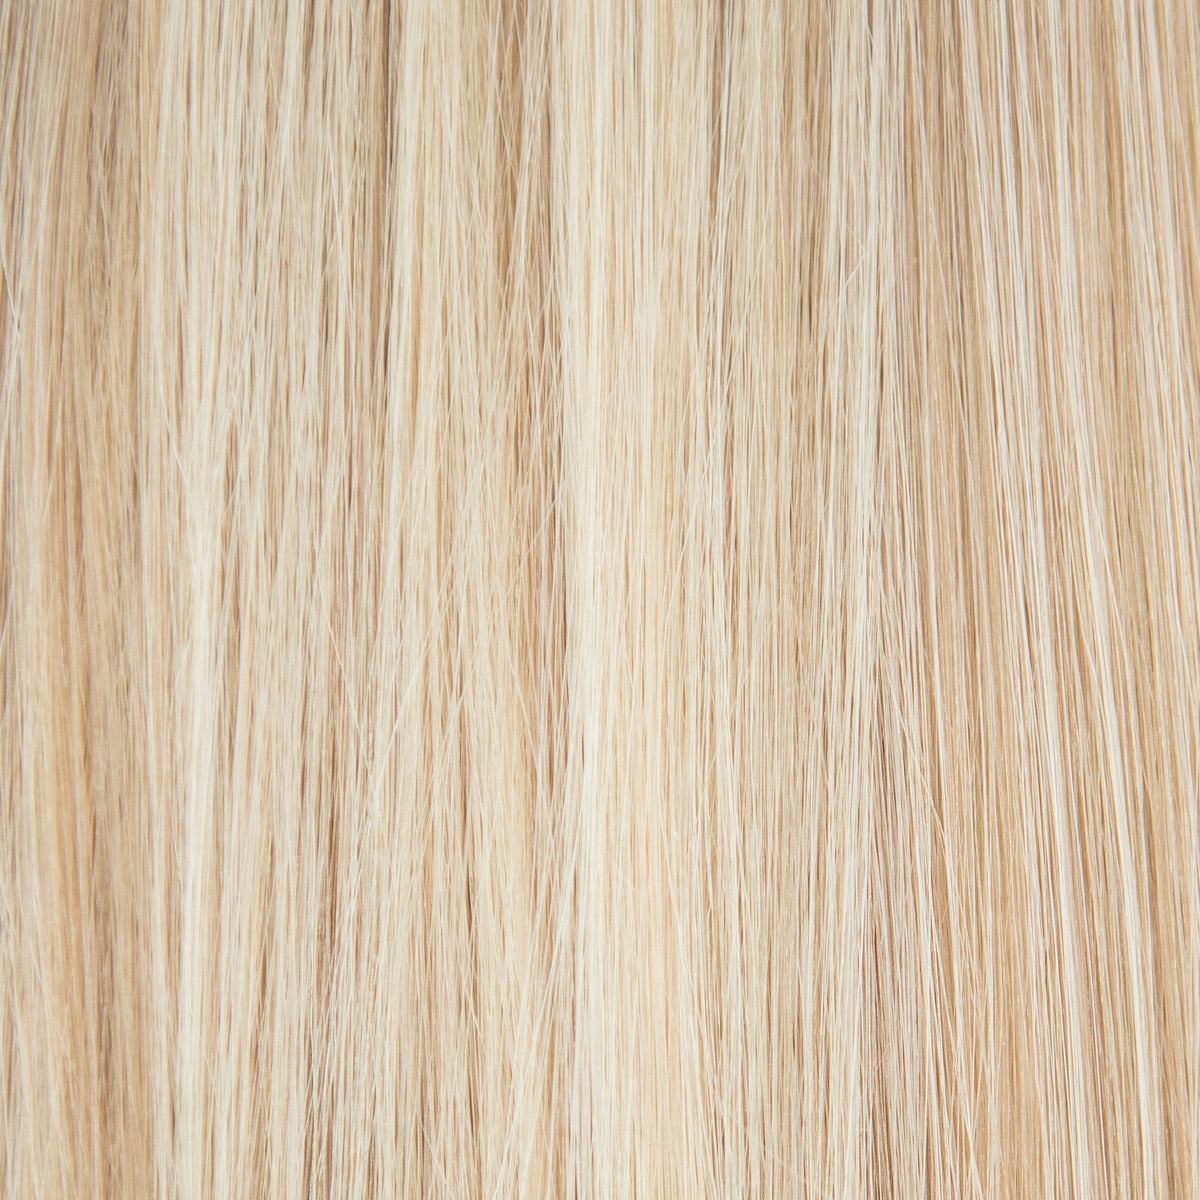 Laced Hair Keratin Bond Extensions Dimensional #18/22